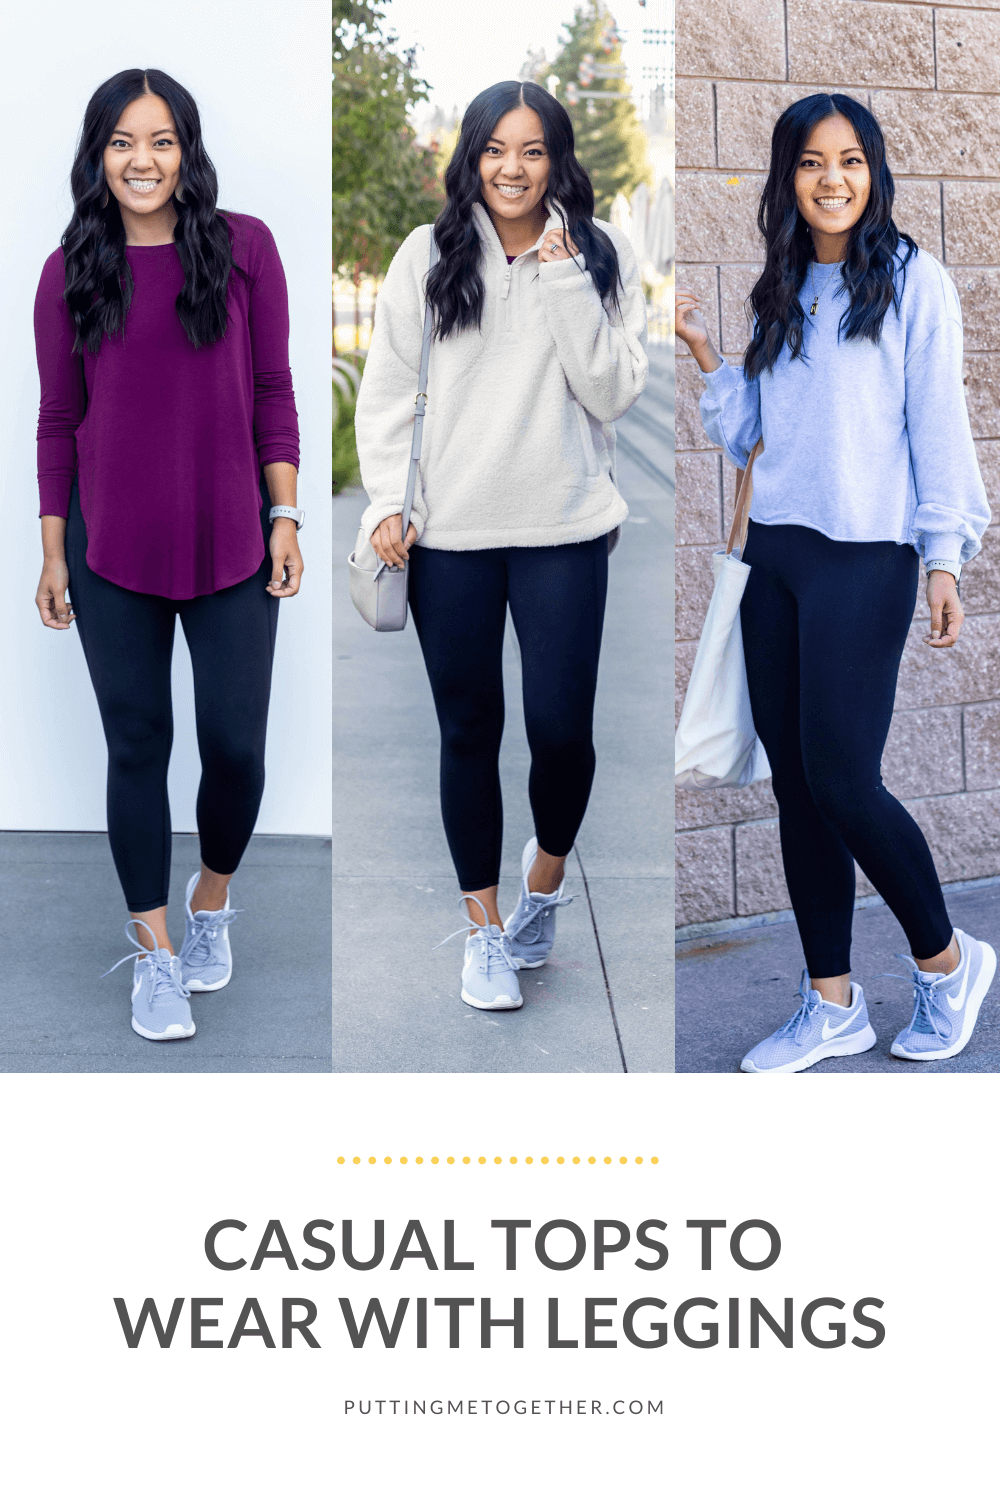 Casual Fall Tops to Wear With Leggings